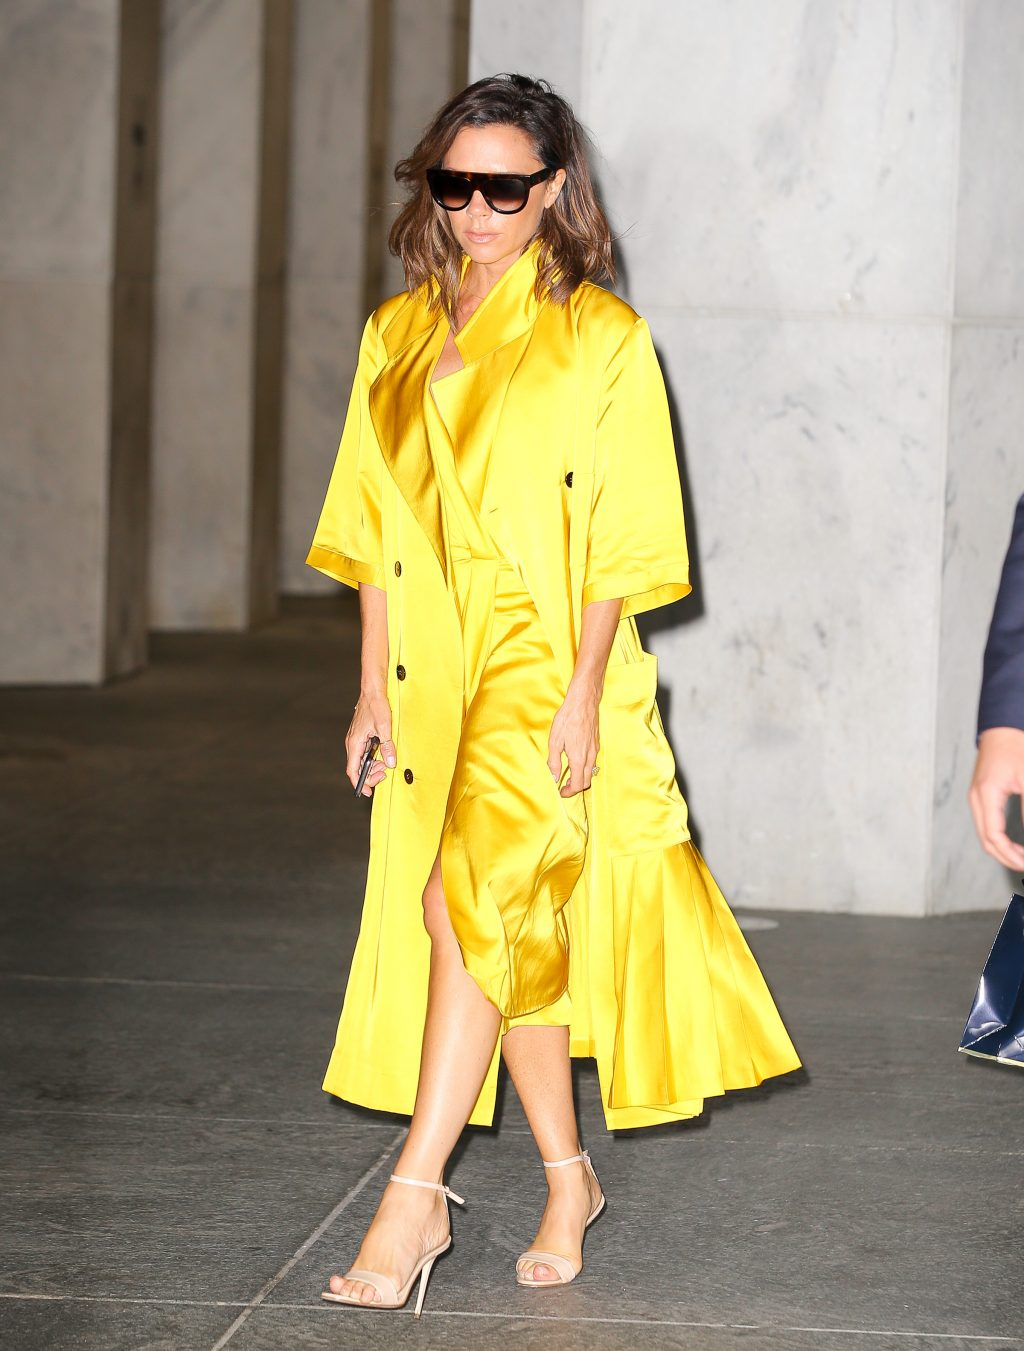 Victoria Beckham seen leaving an office building in New York City - Styly